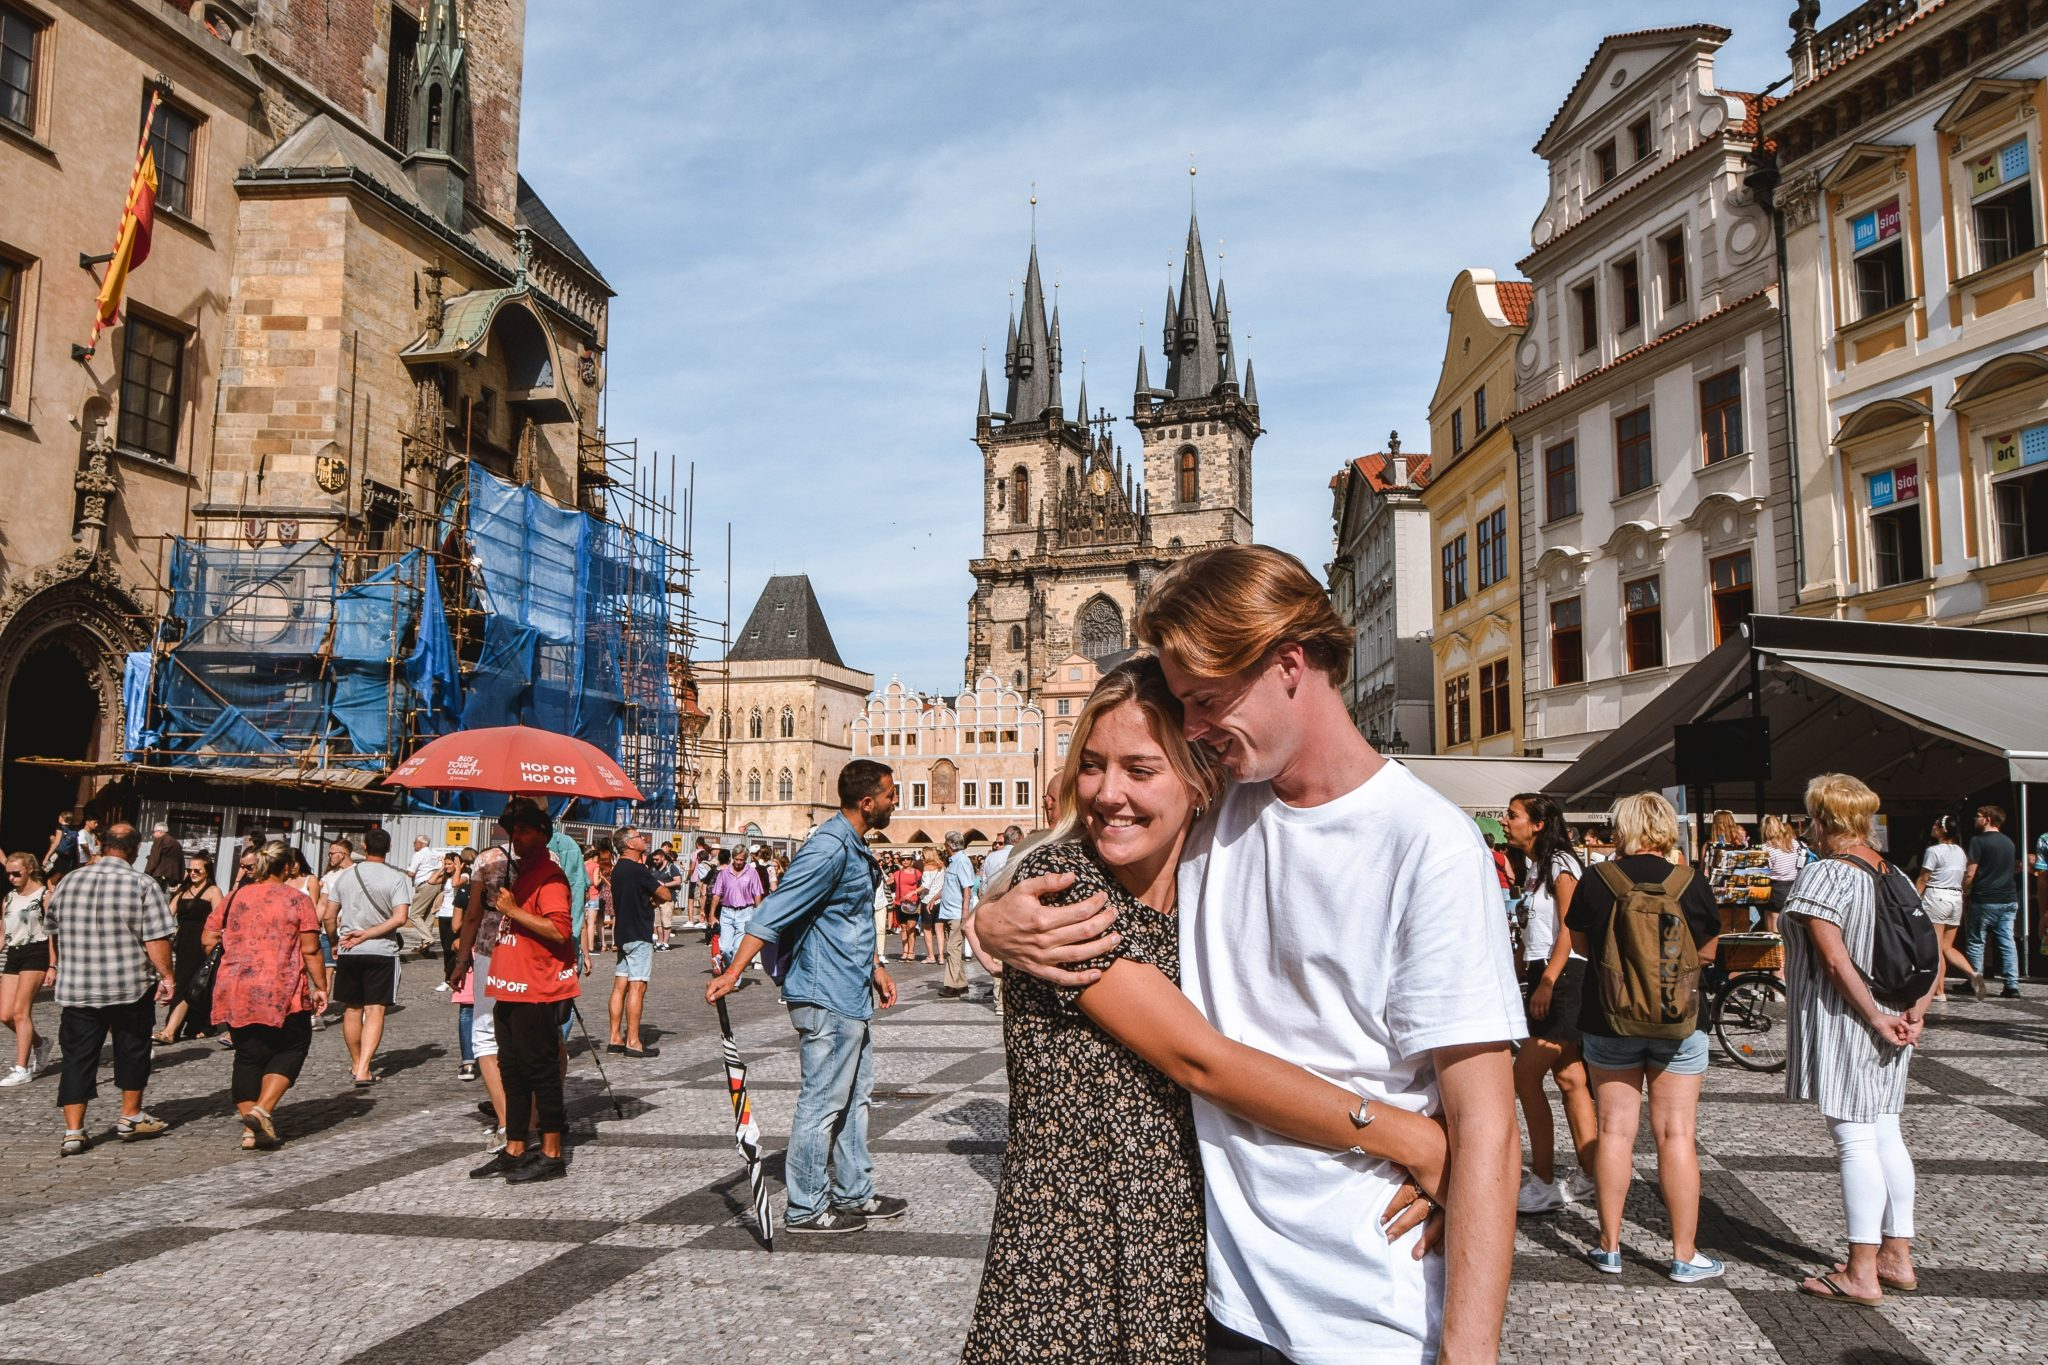 Wanderers & Warriors - Charlie & Lauren UK Travel Couple - Top 9 FUN Things To Do In Prague - What To See In Prague Church Of Our Lady Before Tyn